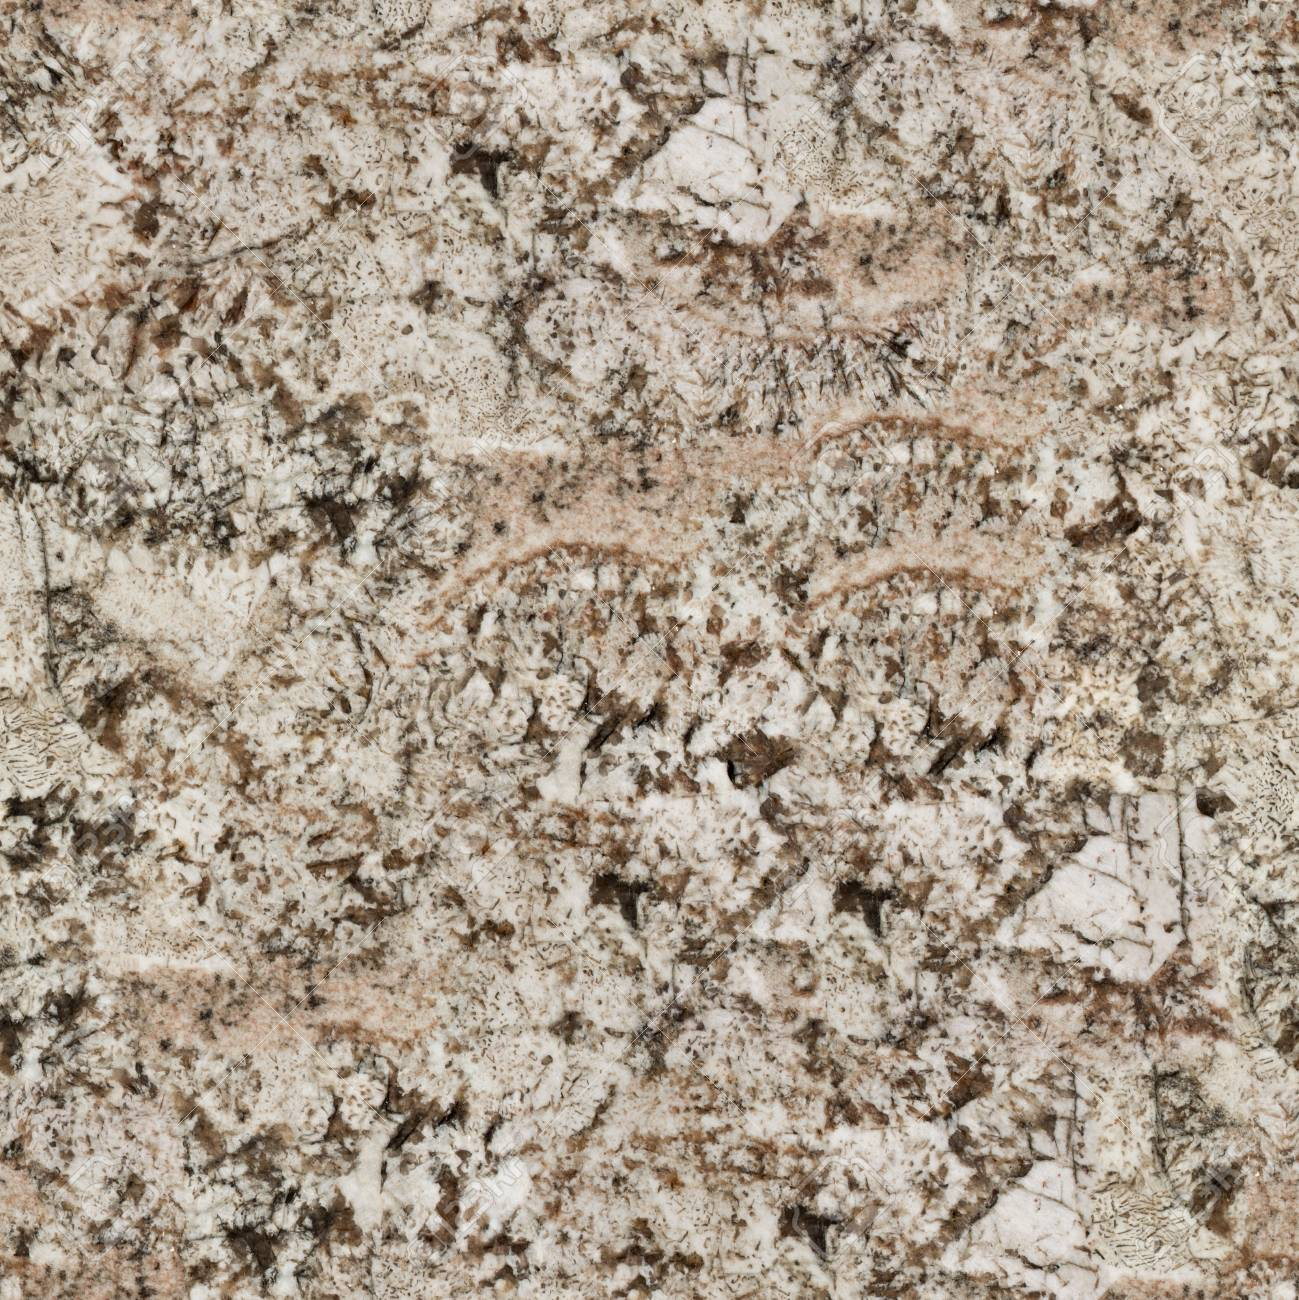 Luxuty Beige Granite Texture Seamless Square Background Tile Stock Photo Picture And Royalty Free Image Image 78602471